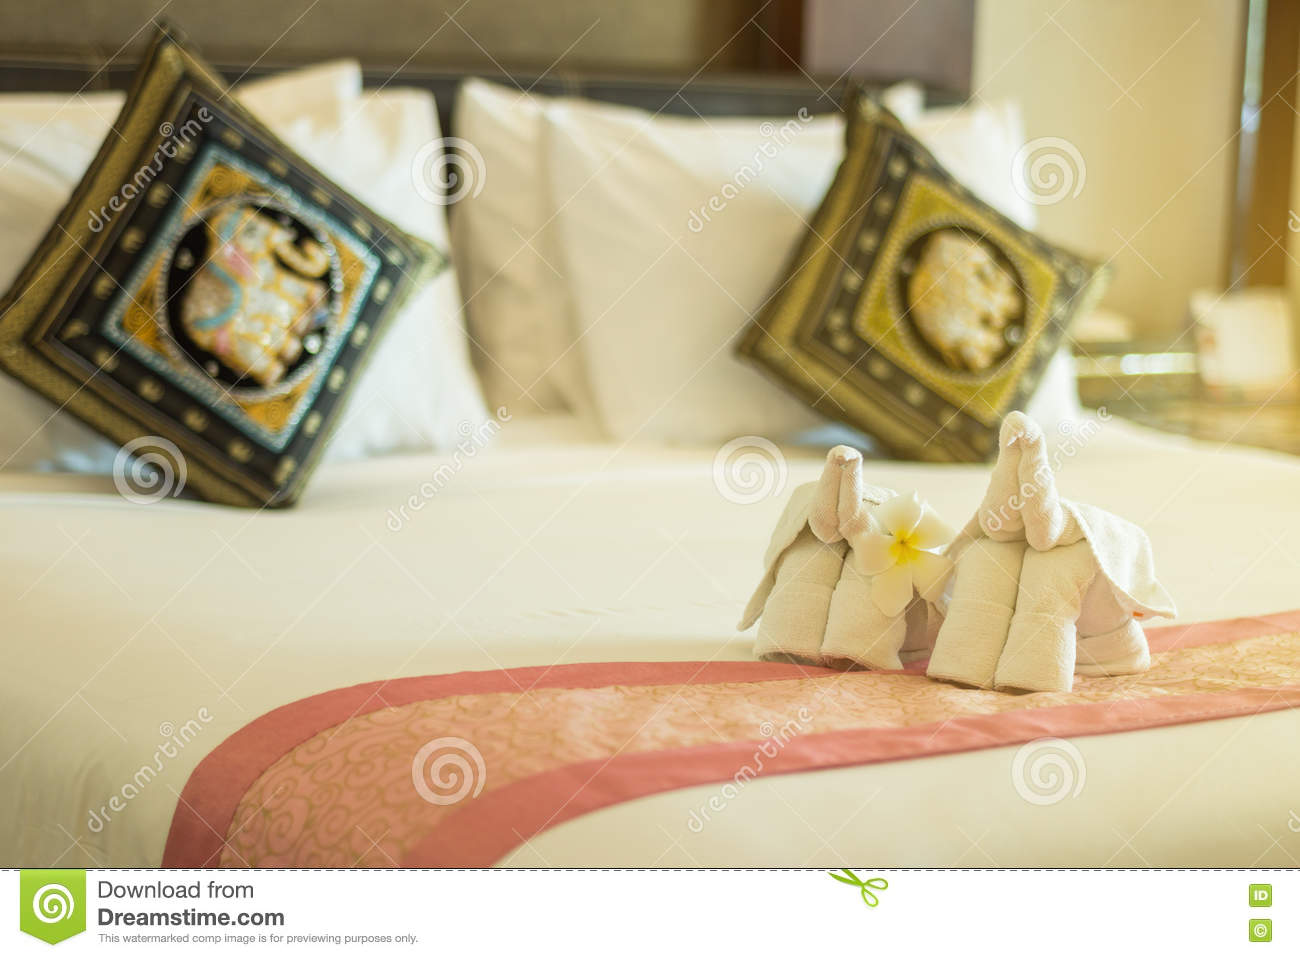 Modern Style Of Bedroom With Folded Towel In Elephant Shape On Bed Stock Photo Image Of Modern Resort 74705900